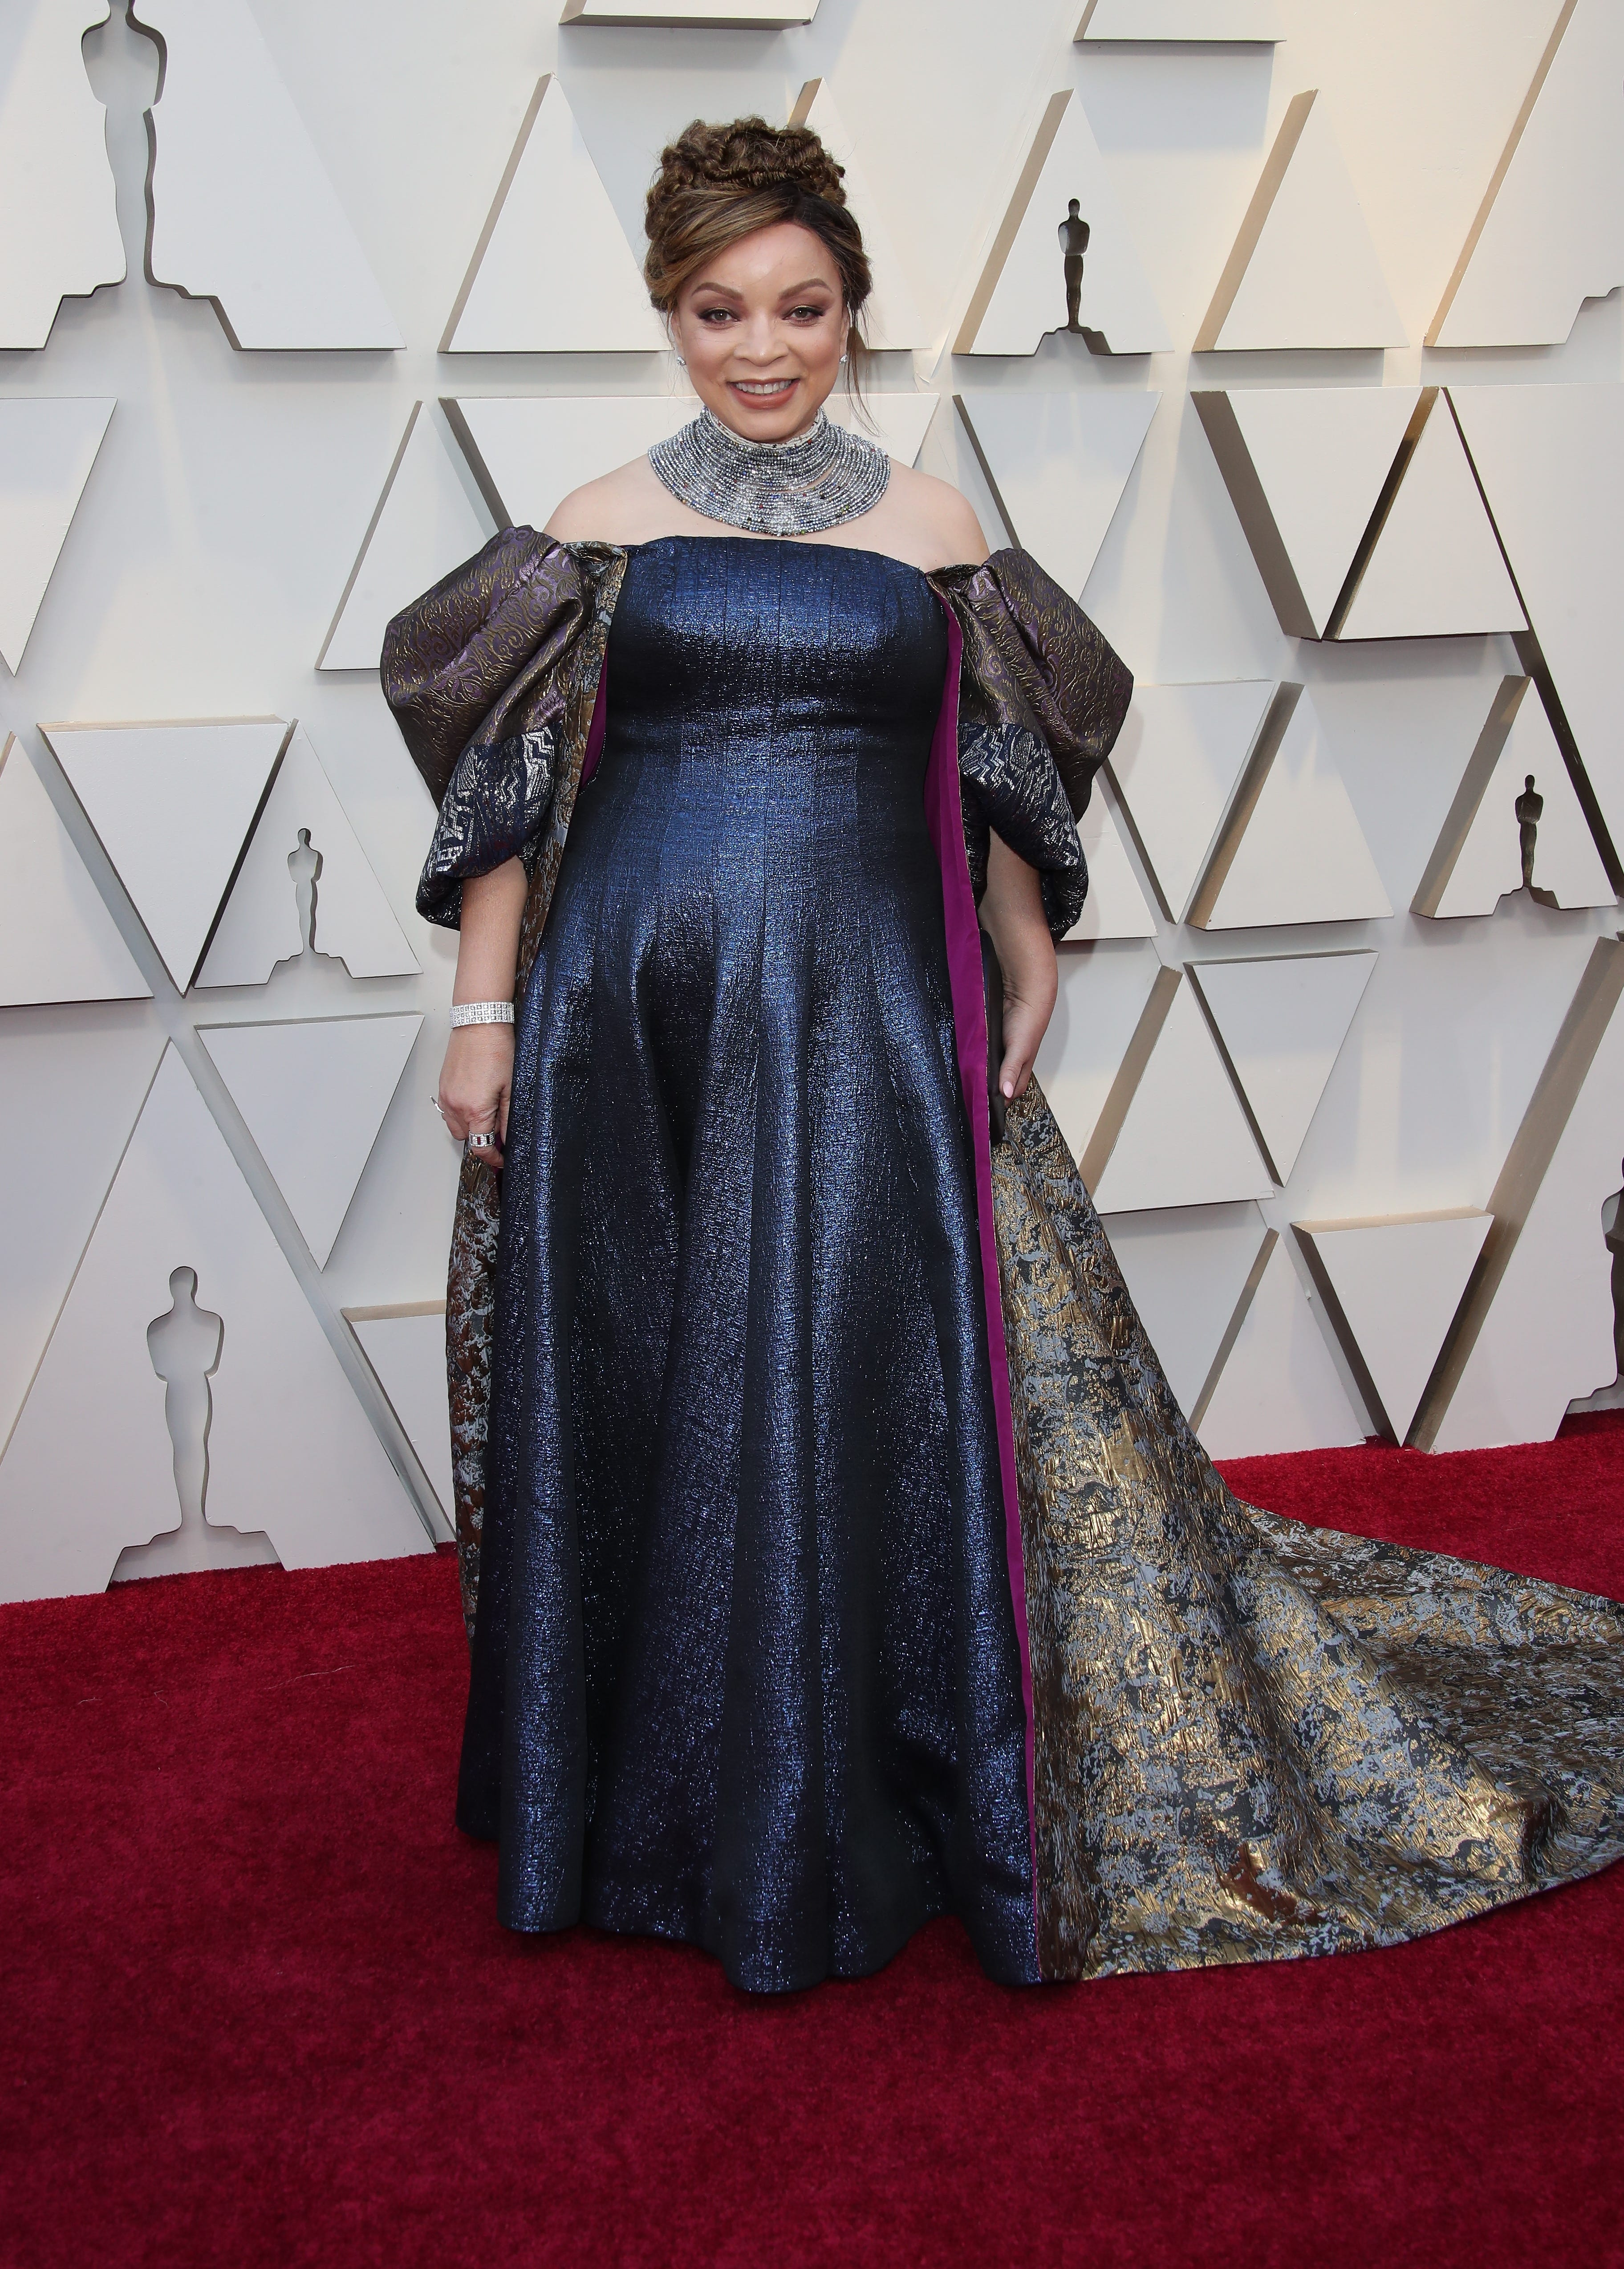 February 24, 2019; Los Angeles, CA, USA; Ruth E. Carter arrives at the 91st Academy Awards at the Dolby Theatre. Mandatory Credit: Dan MacMedan-USA TODAY NETWORK (Via OlyDrop)